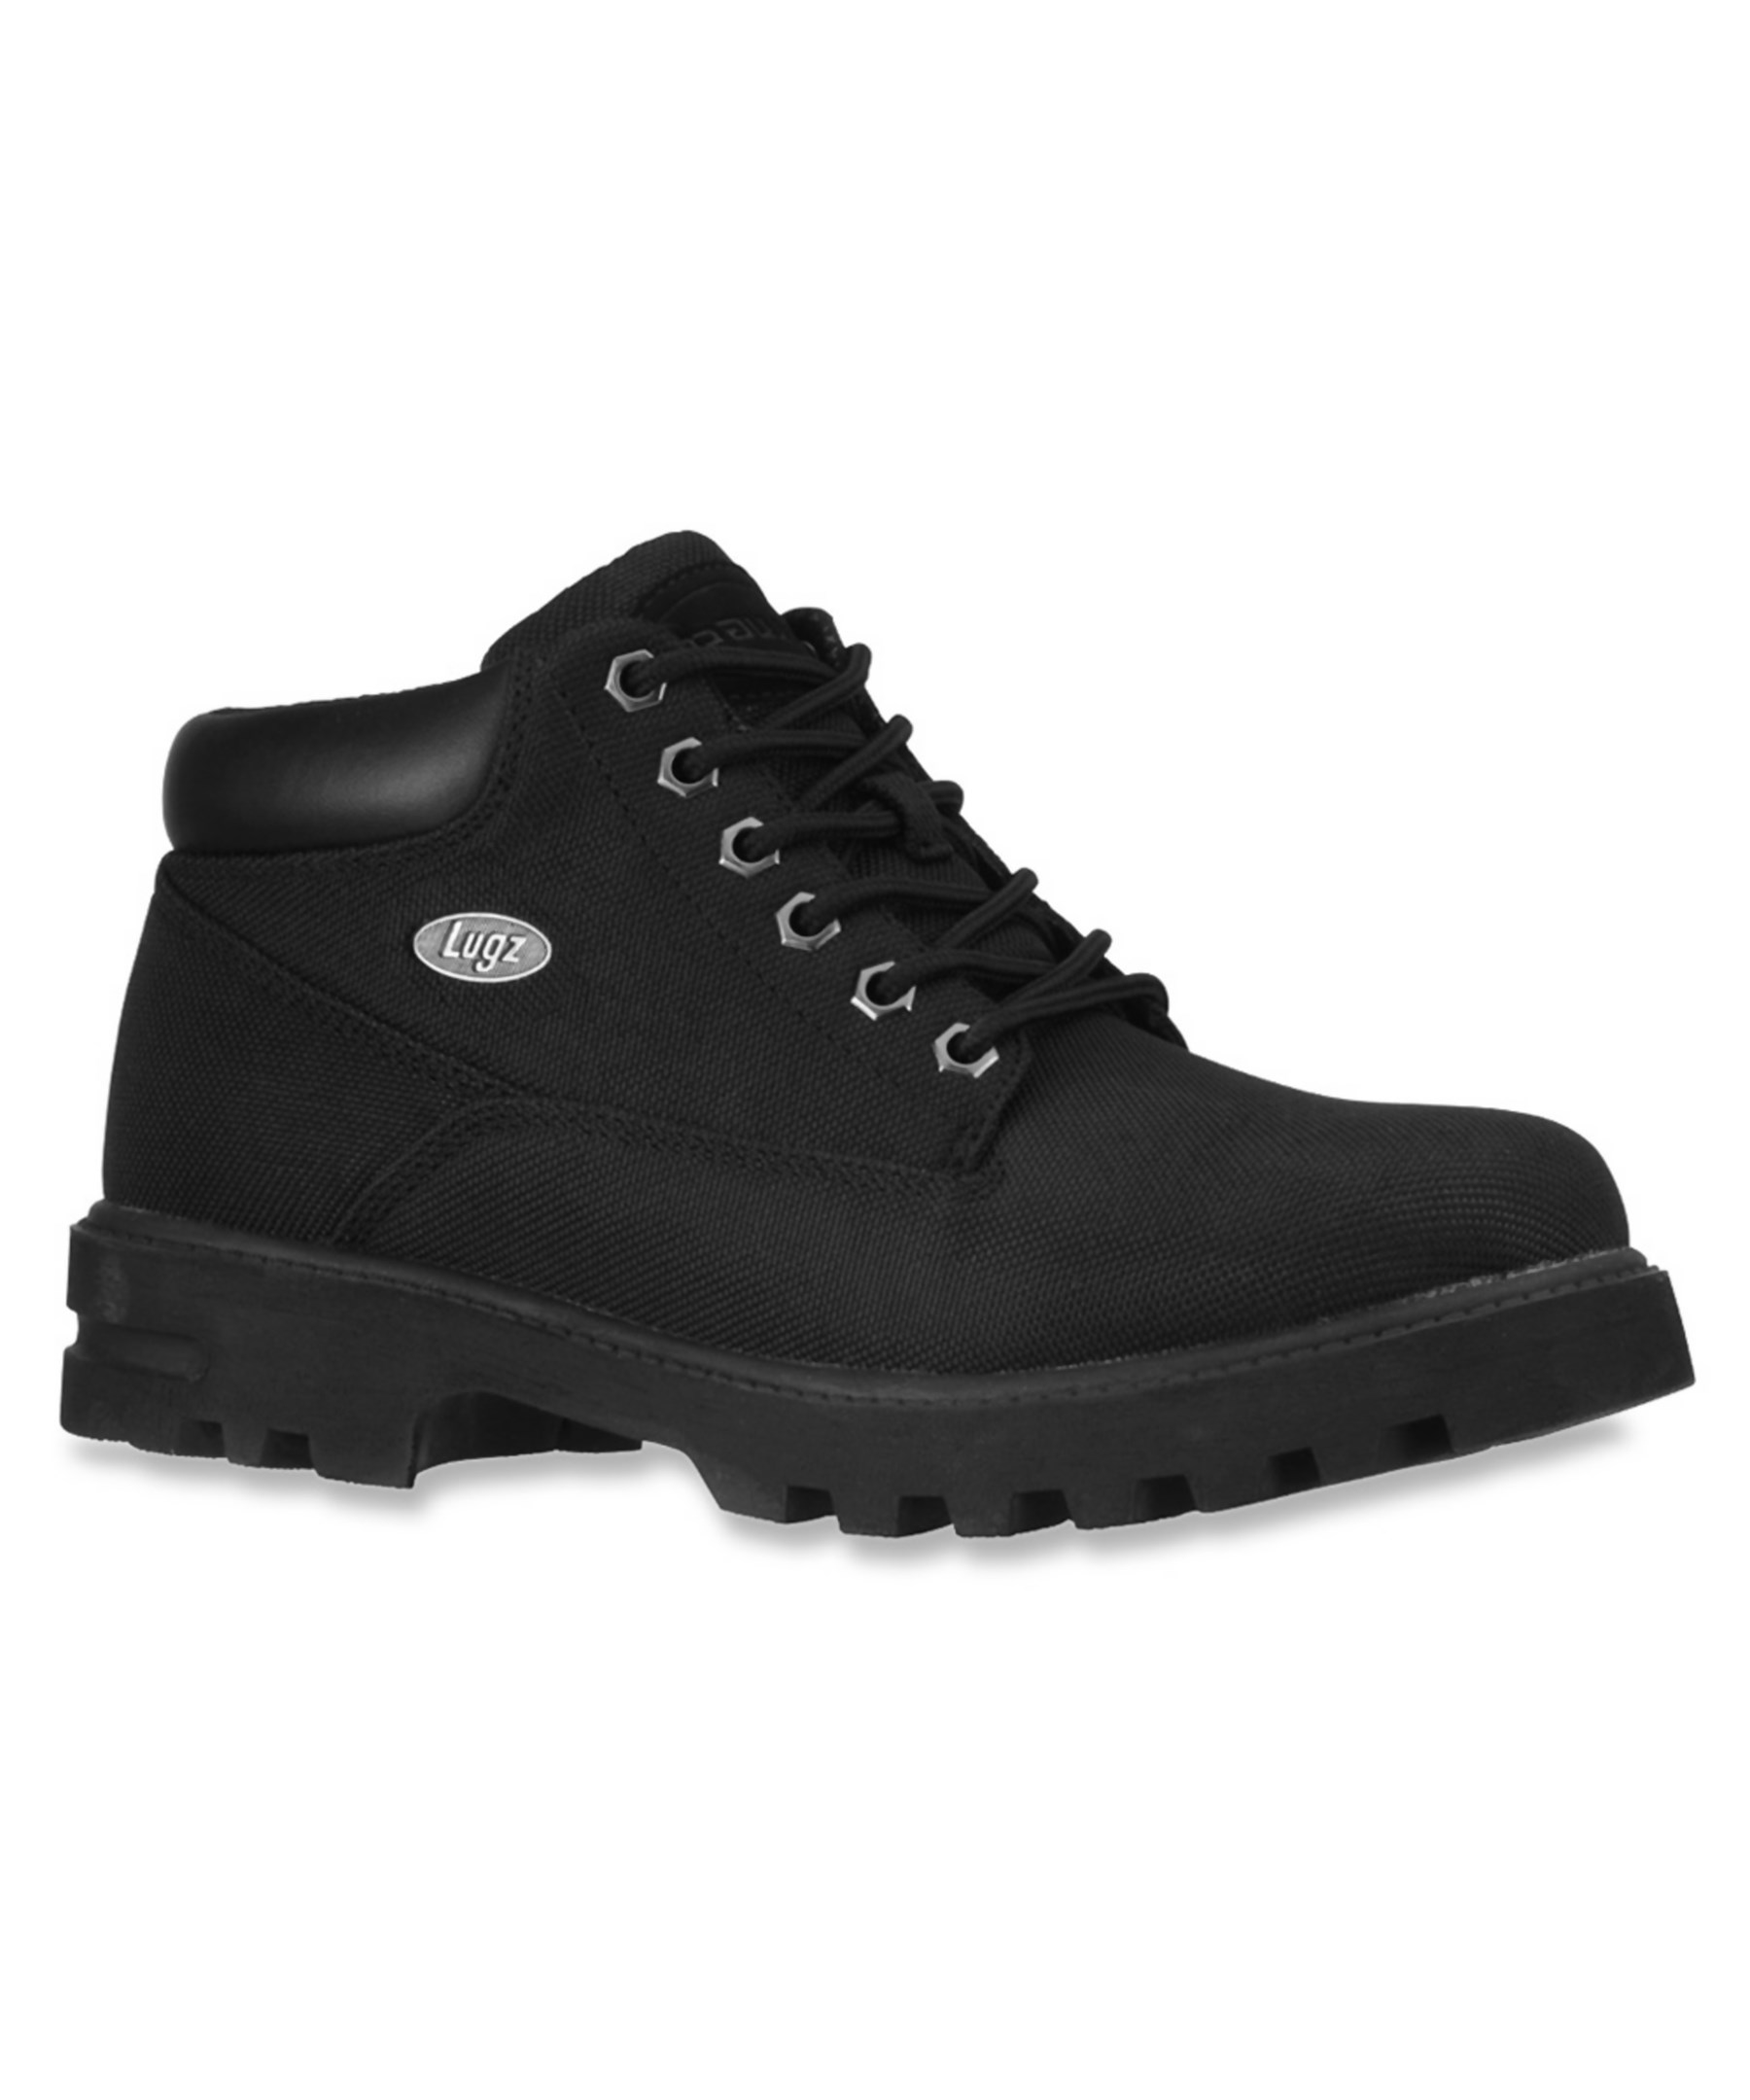 Huge Branded Selection of Heels, Boots, Skate, Canvas, Suede, Leather, Sandals, Shape Ups, Trail Running, Walking Shoes for Womens, Mens, Kids at Shoe City.